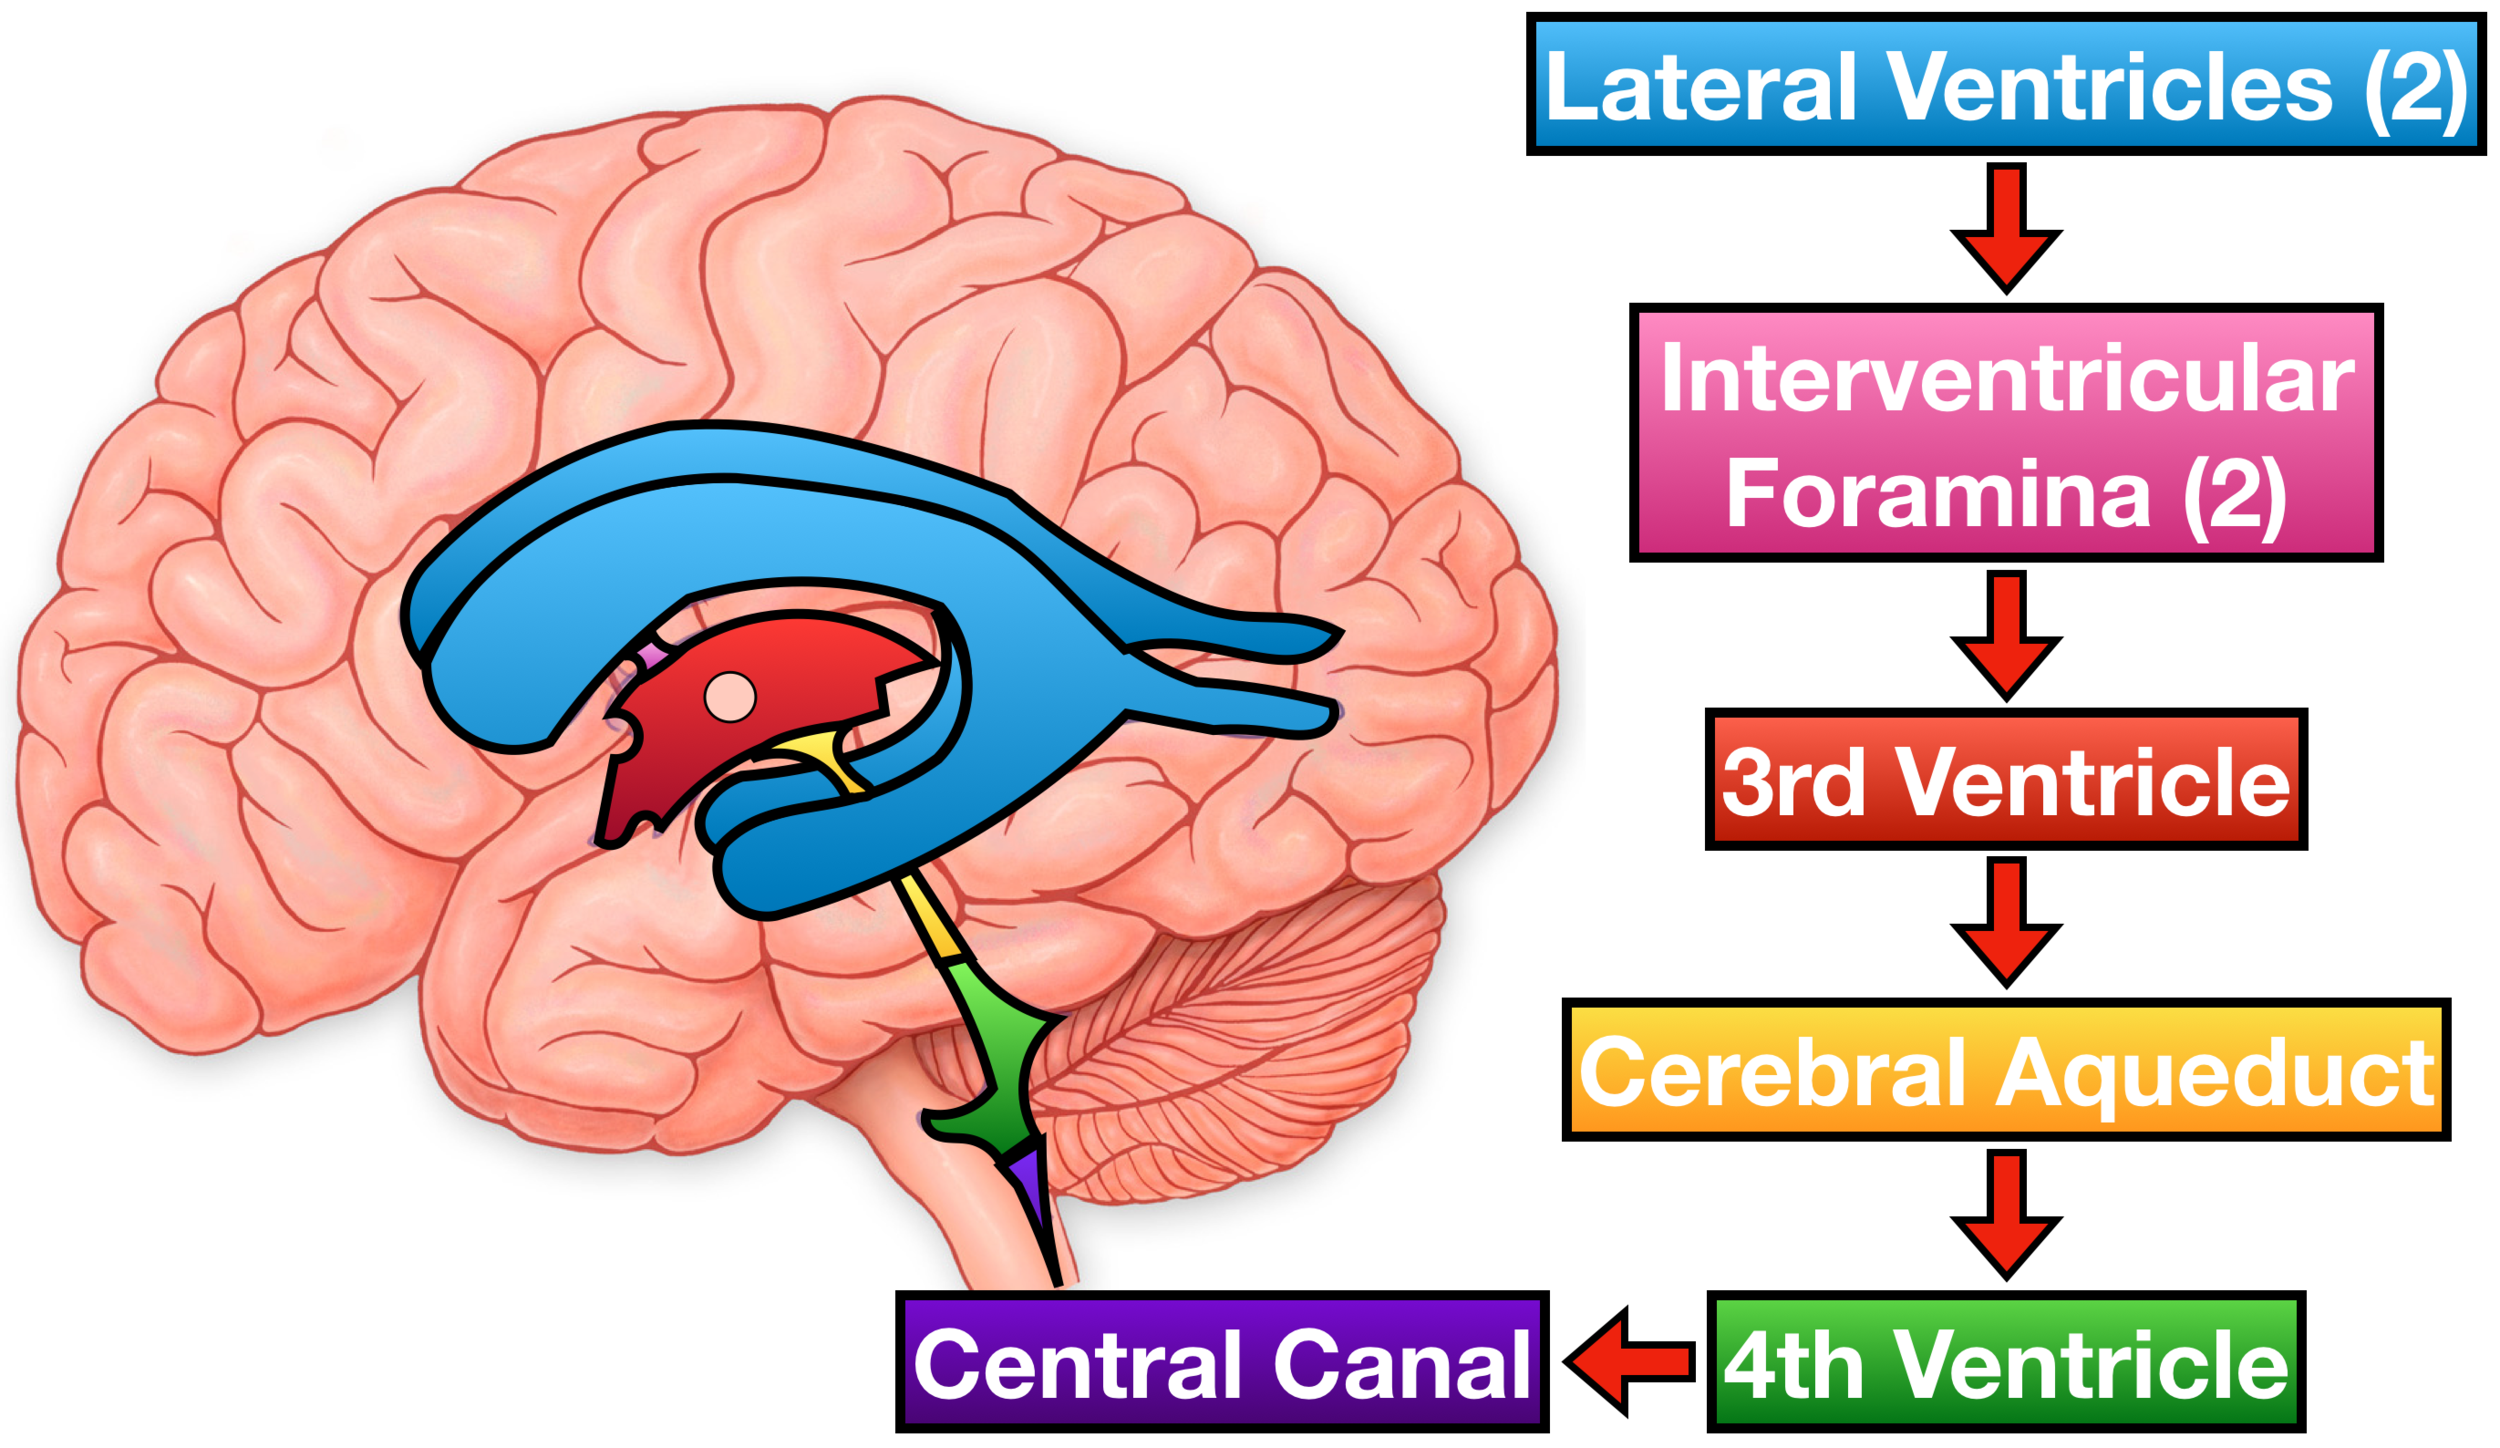 Ventricles of the Brain Labeled Anatomy, Function, CSF Flow ...